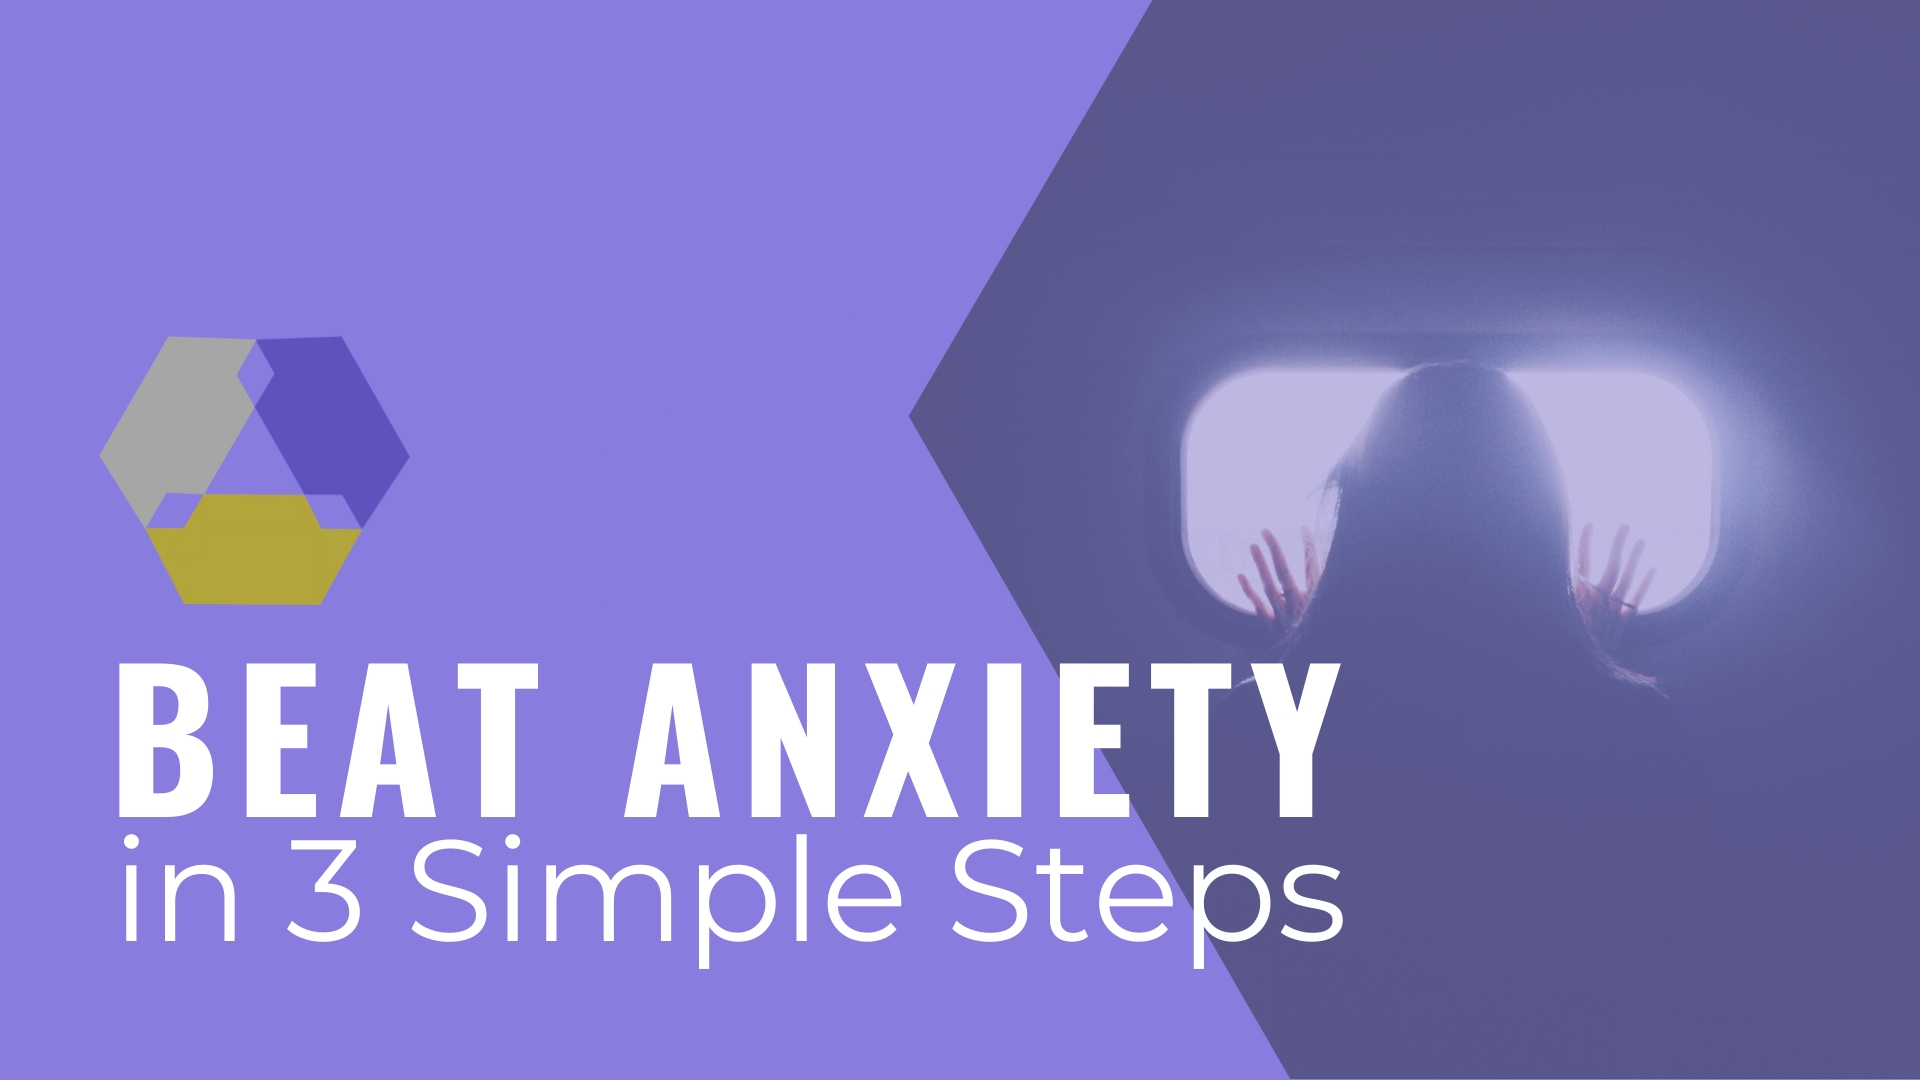 beat anxiety in 3 simple steps